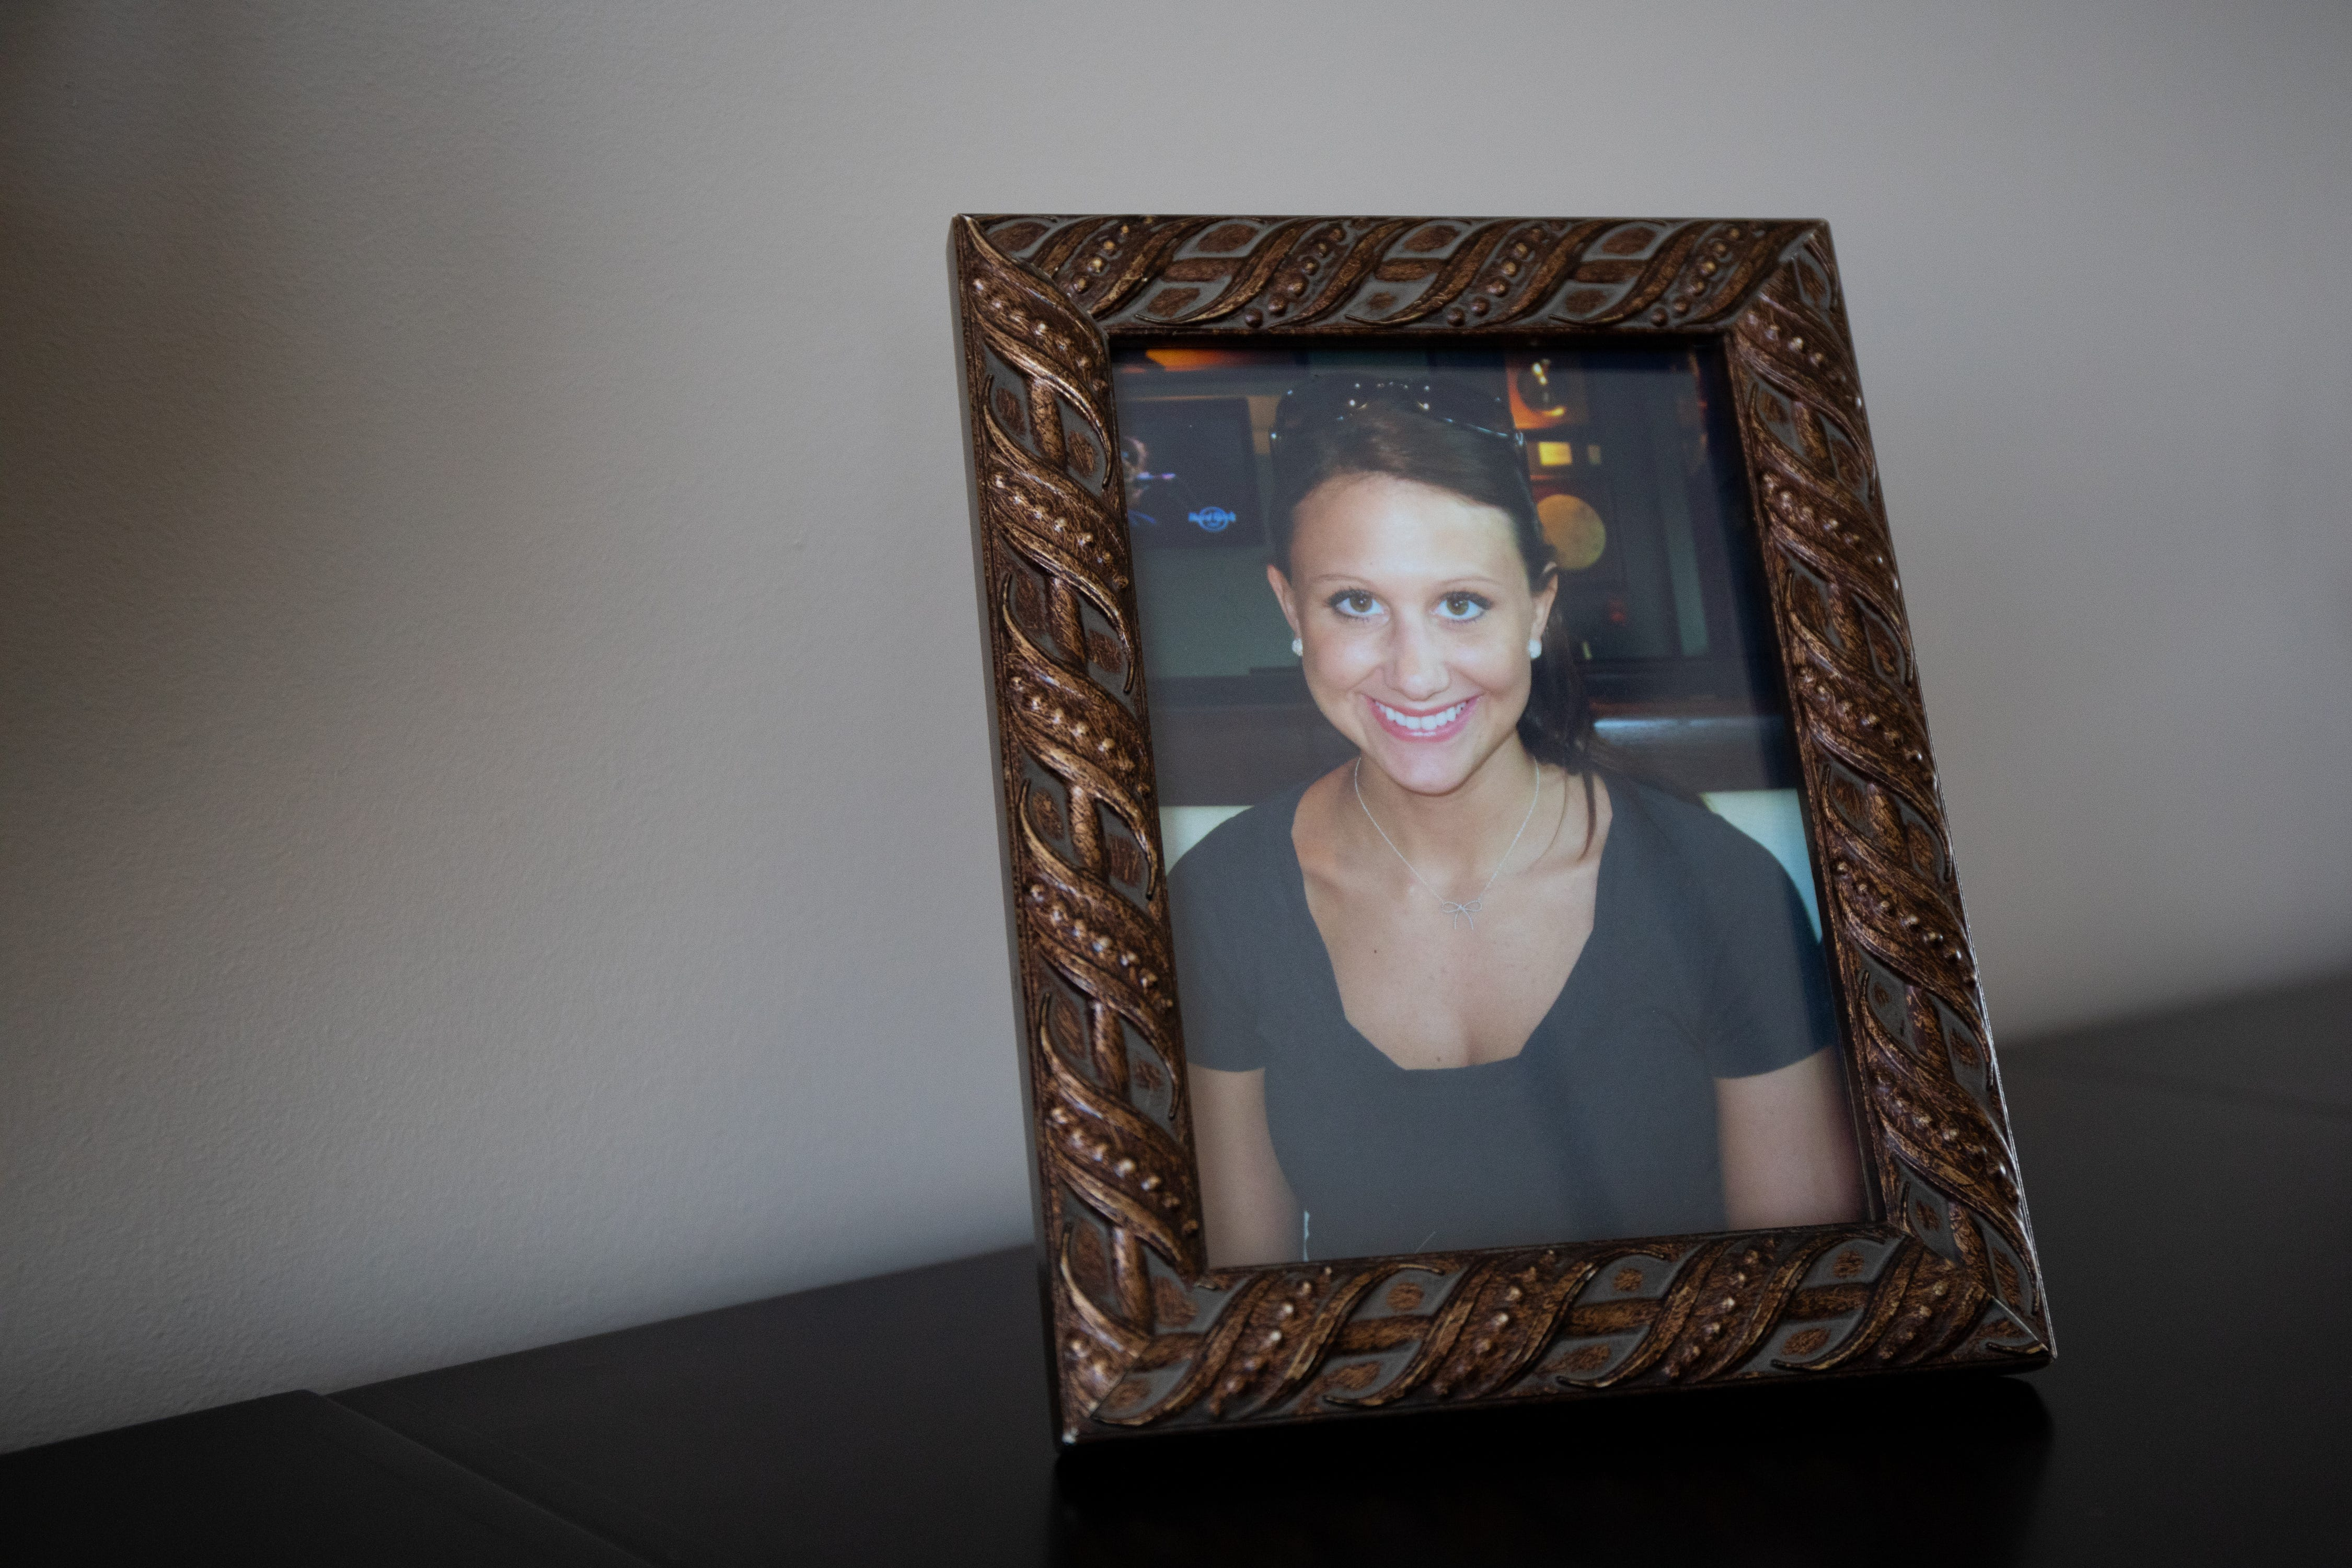 A framed picture of Lara Gass taken by her father, Jay Gass, in 2011 at a restaurant celebrating her brother's college graduation in Nashville, Tennessee, photographed in Ponte Vedra Beach, Fla. on March 18, 2019. Lara Gass died at age 27 on March 18, 2014 in a car crash caused by a faulty ignition switch.